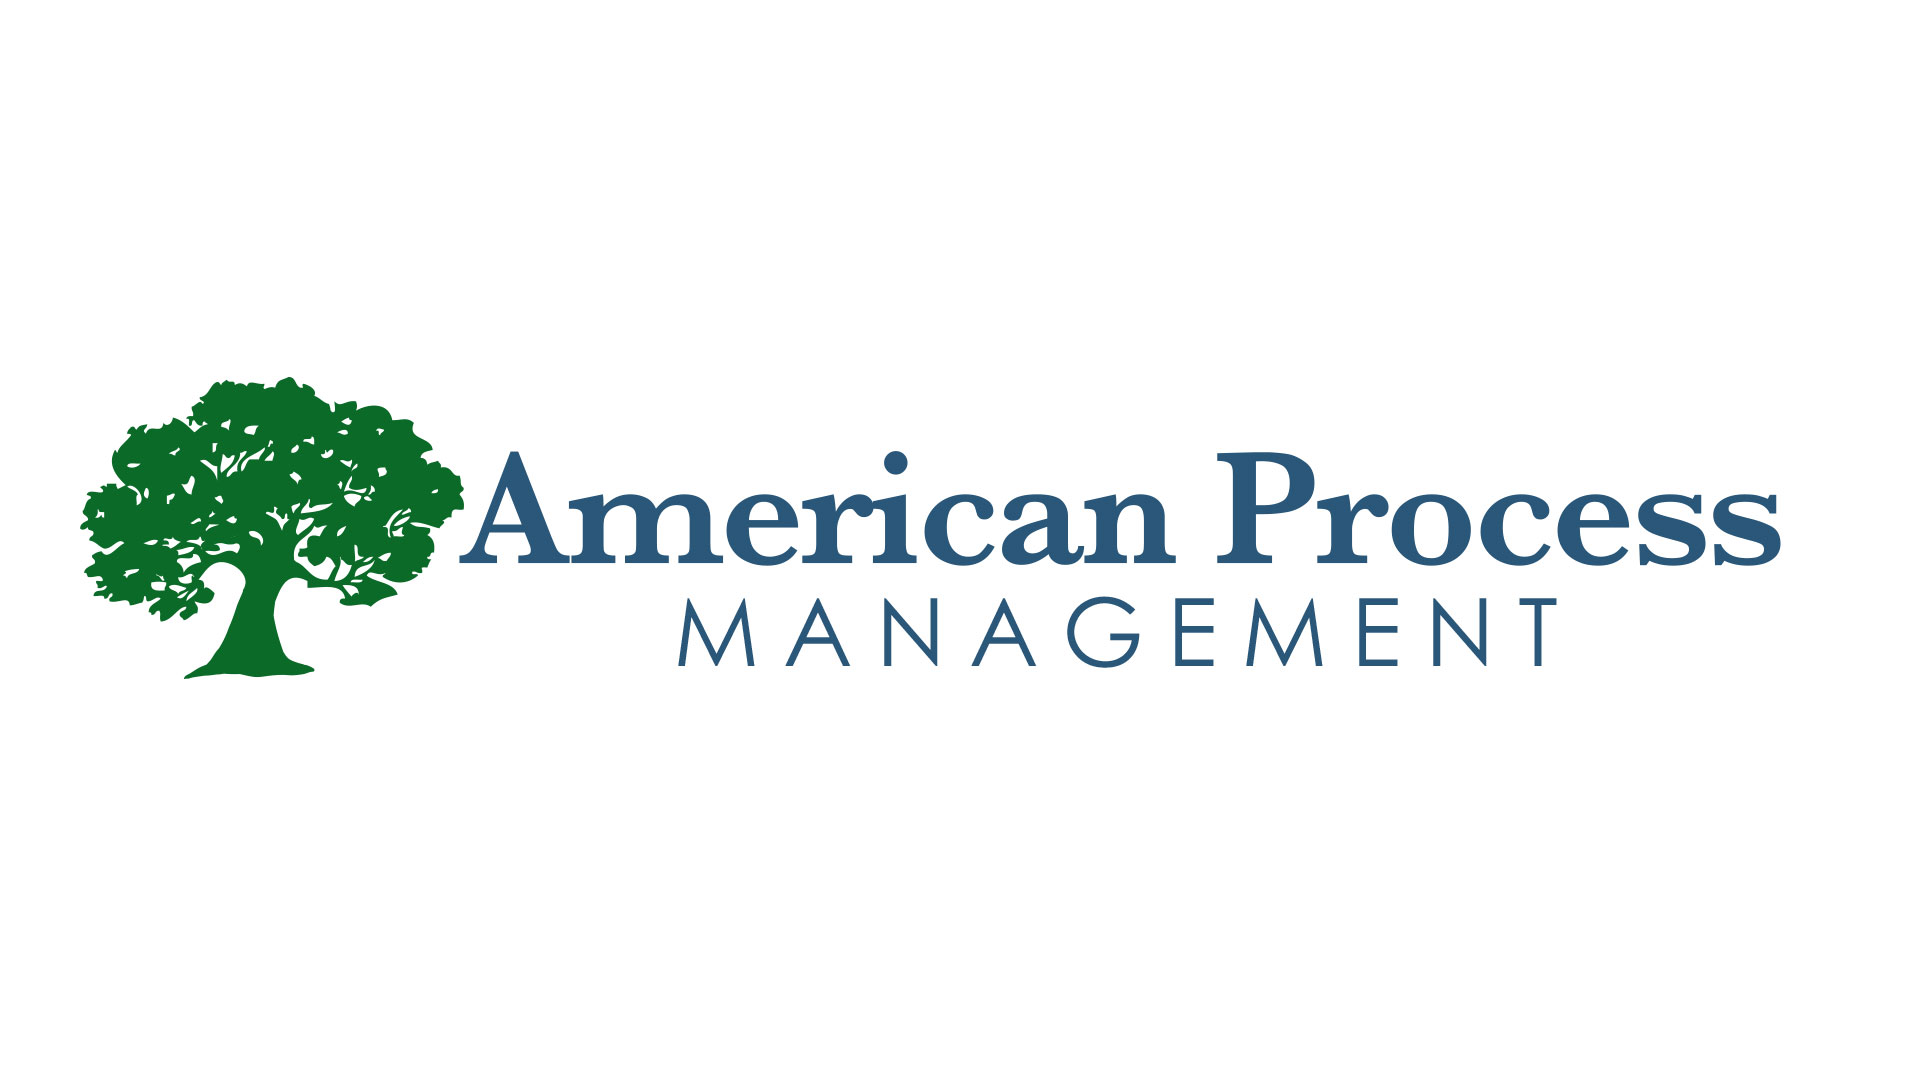 American Process Management